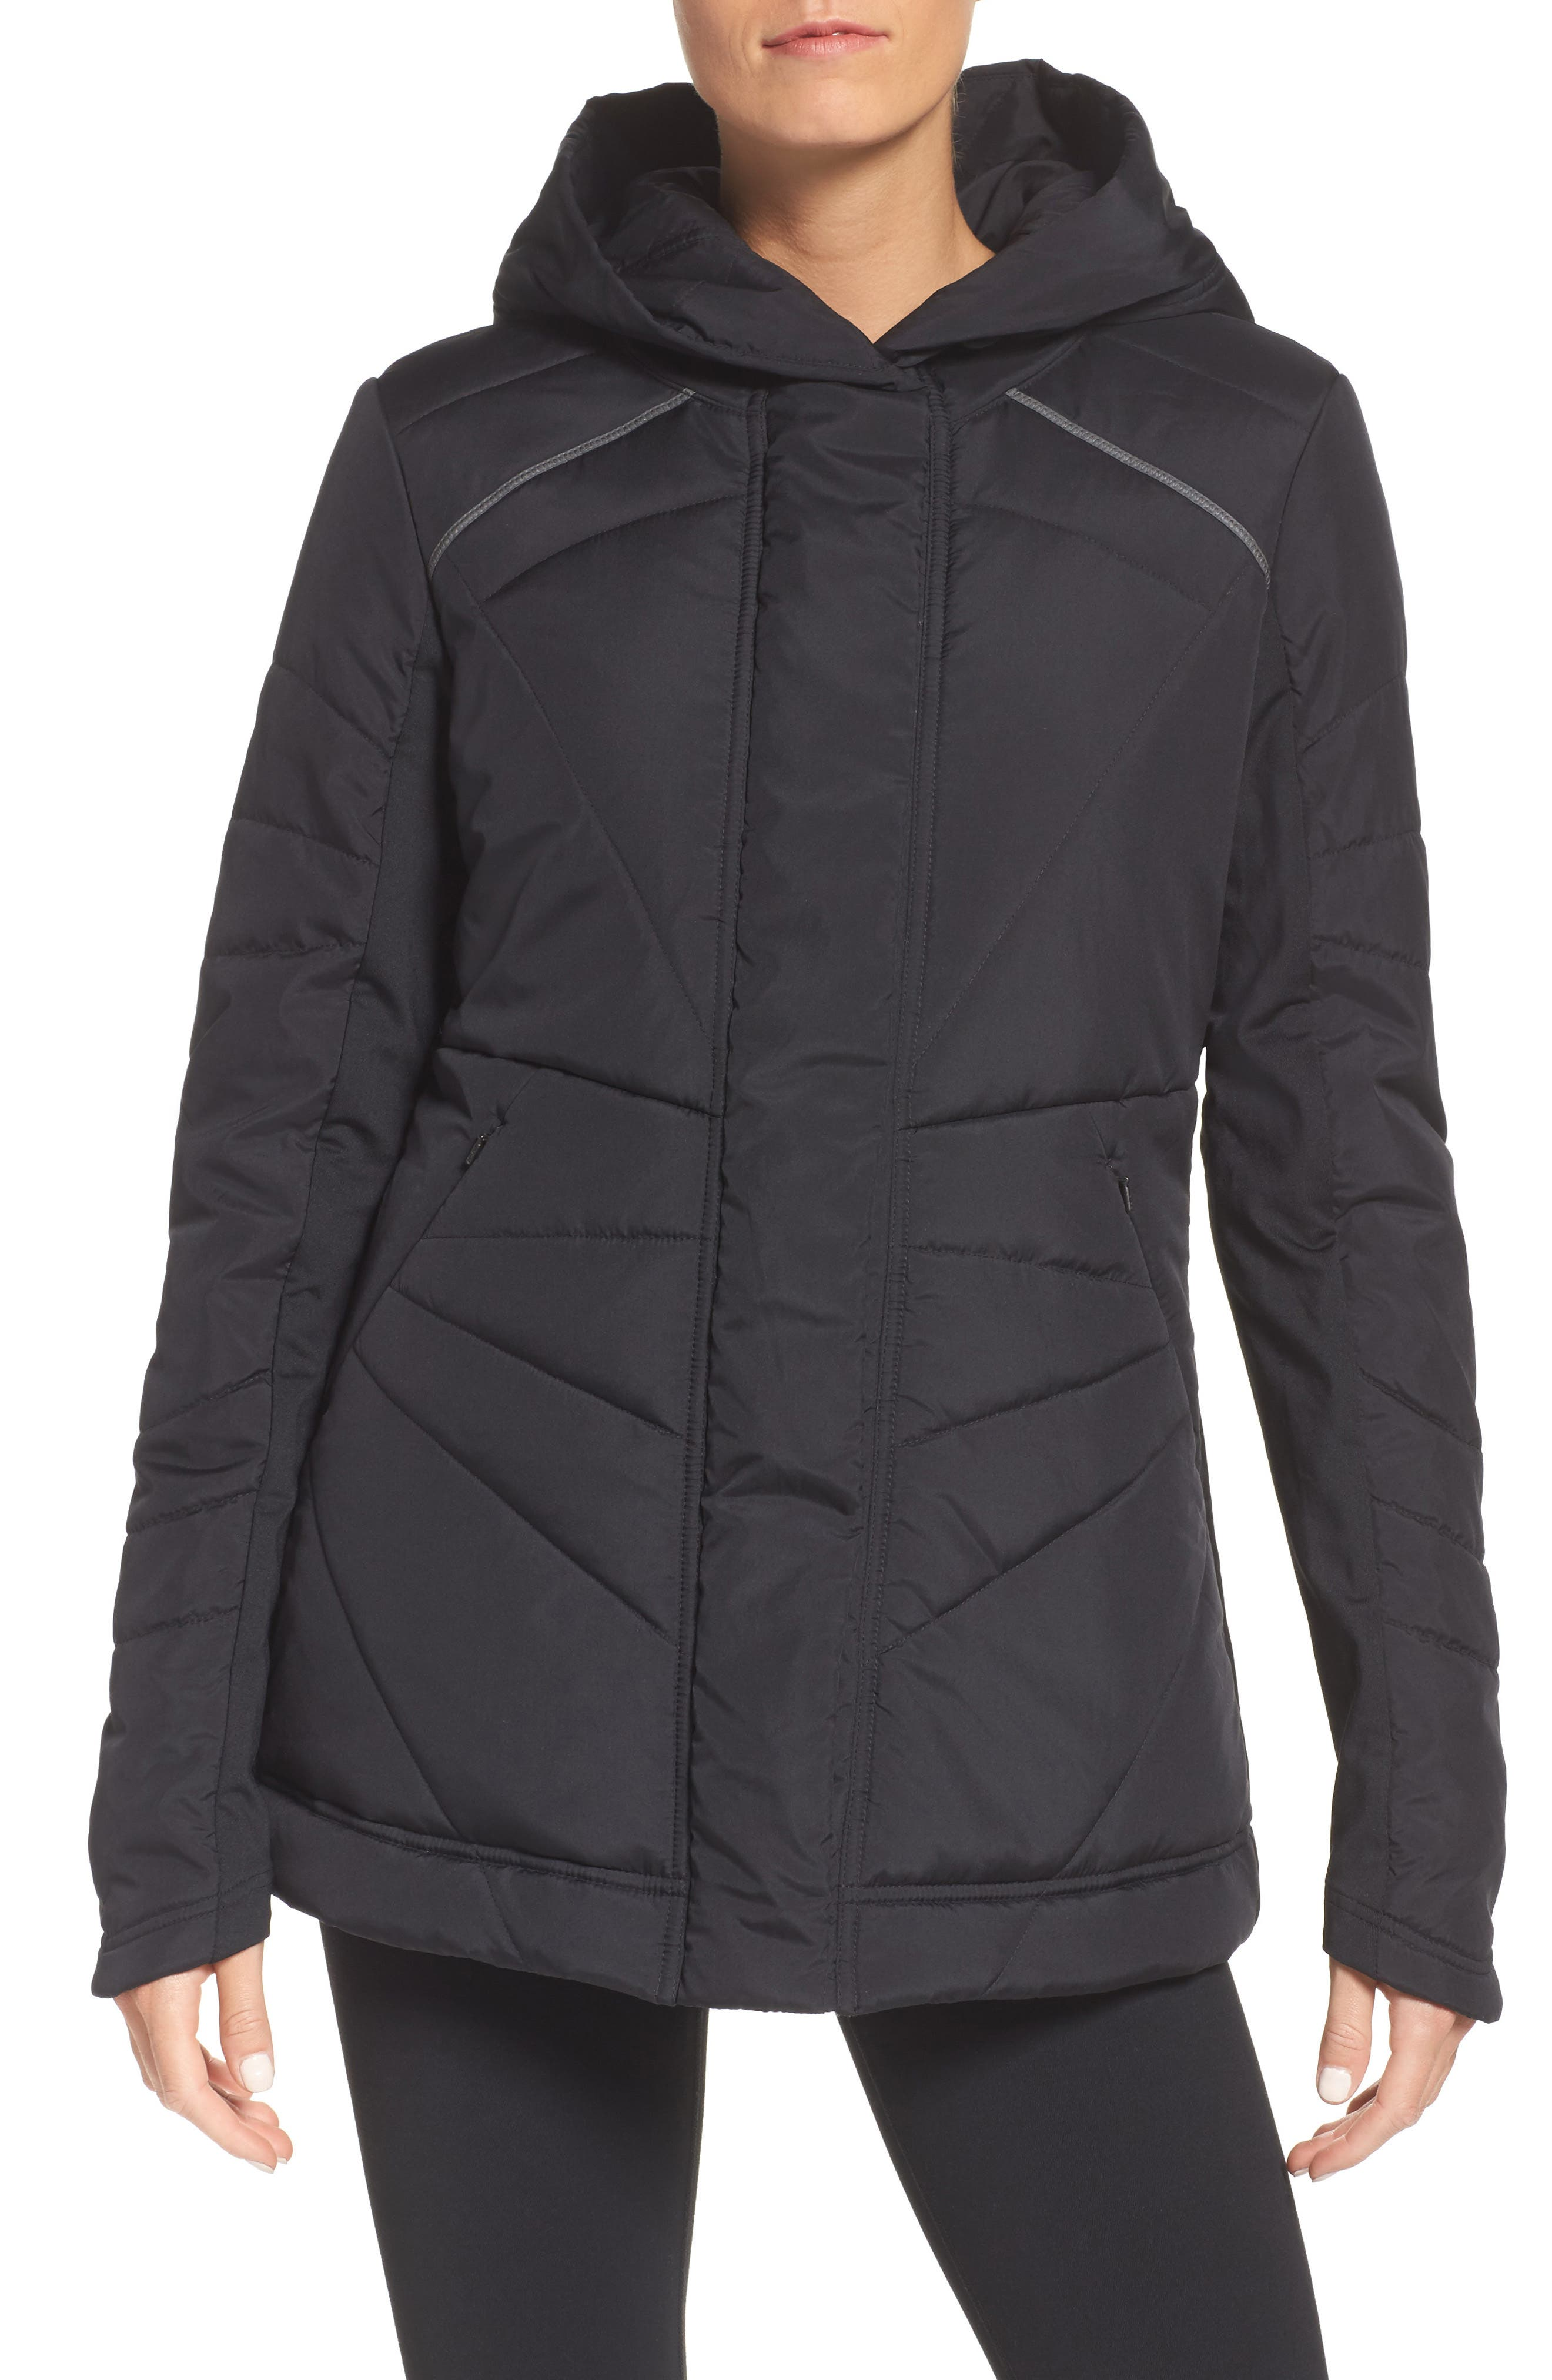 Beyond Hooded Puffer Jacket,                         Main,                         color, 001